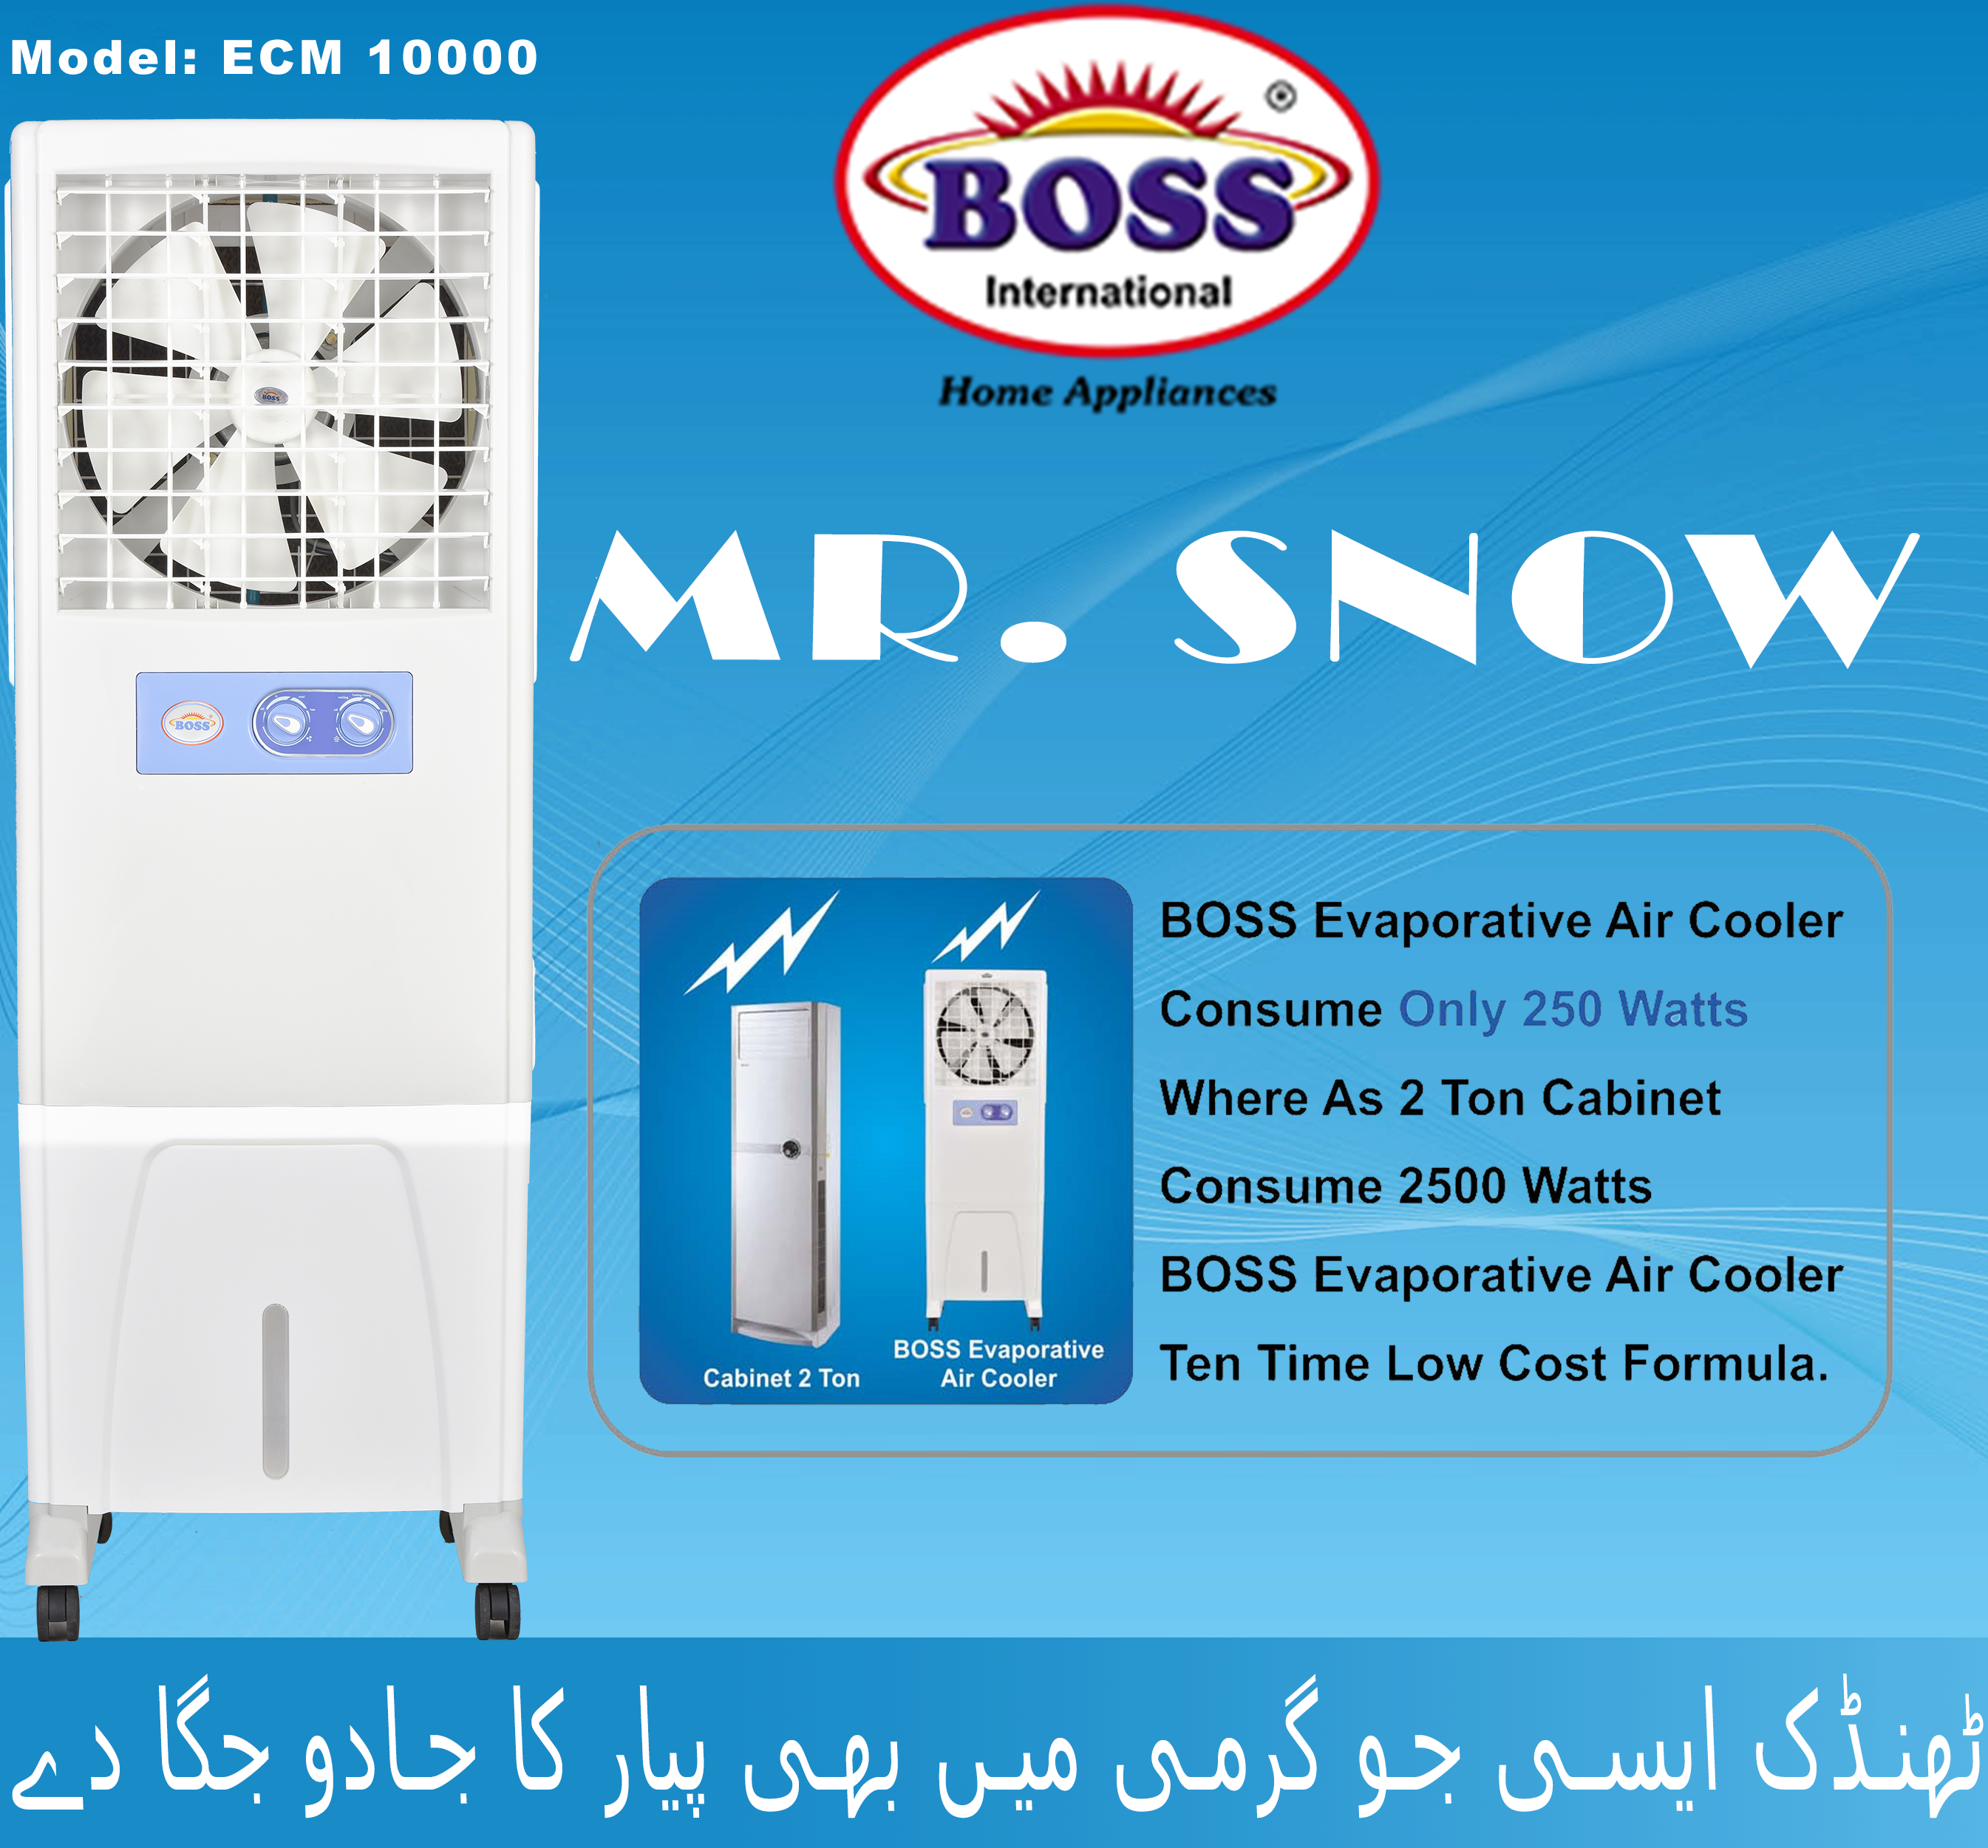 BOSS New Innovation in Evaporative Air Cooler. | BOSS air coolers ...